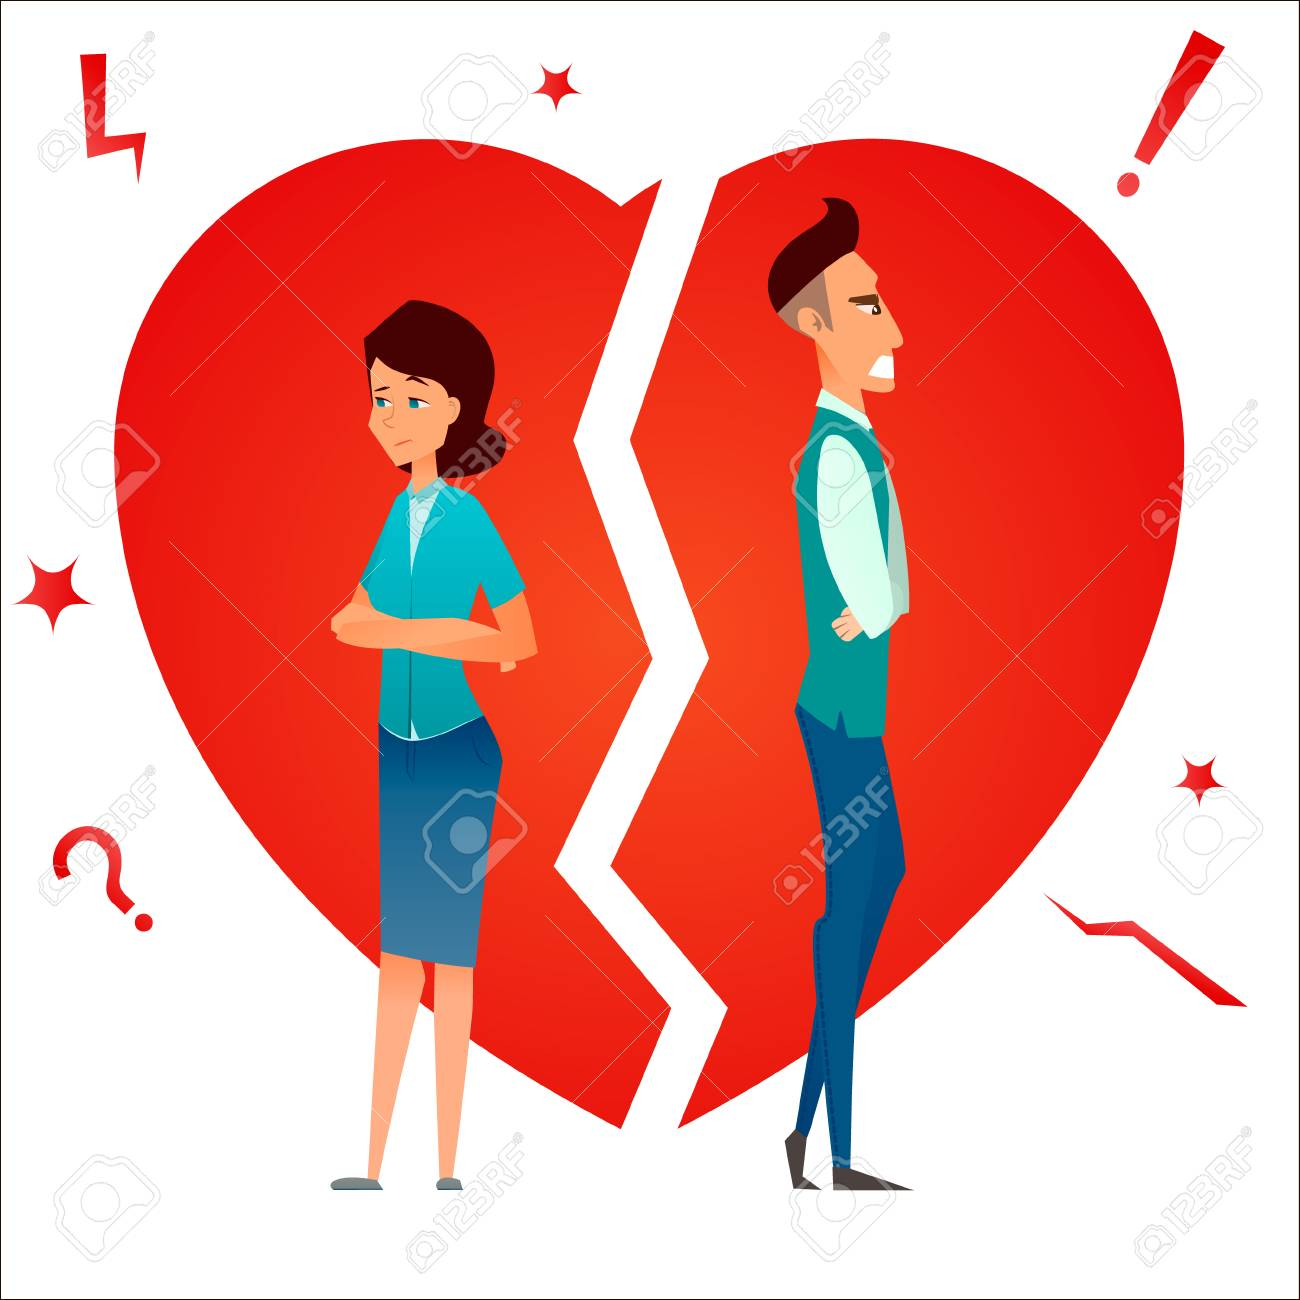 Divorce Family Conflict Break Up Relationship Married Couple Stock Photo Picture And Royalty Free Image Image 98376411